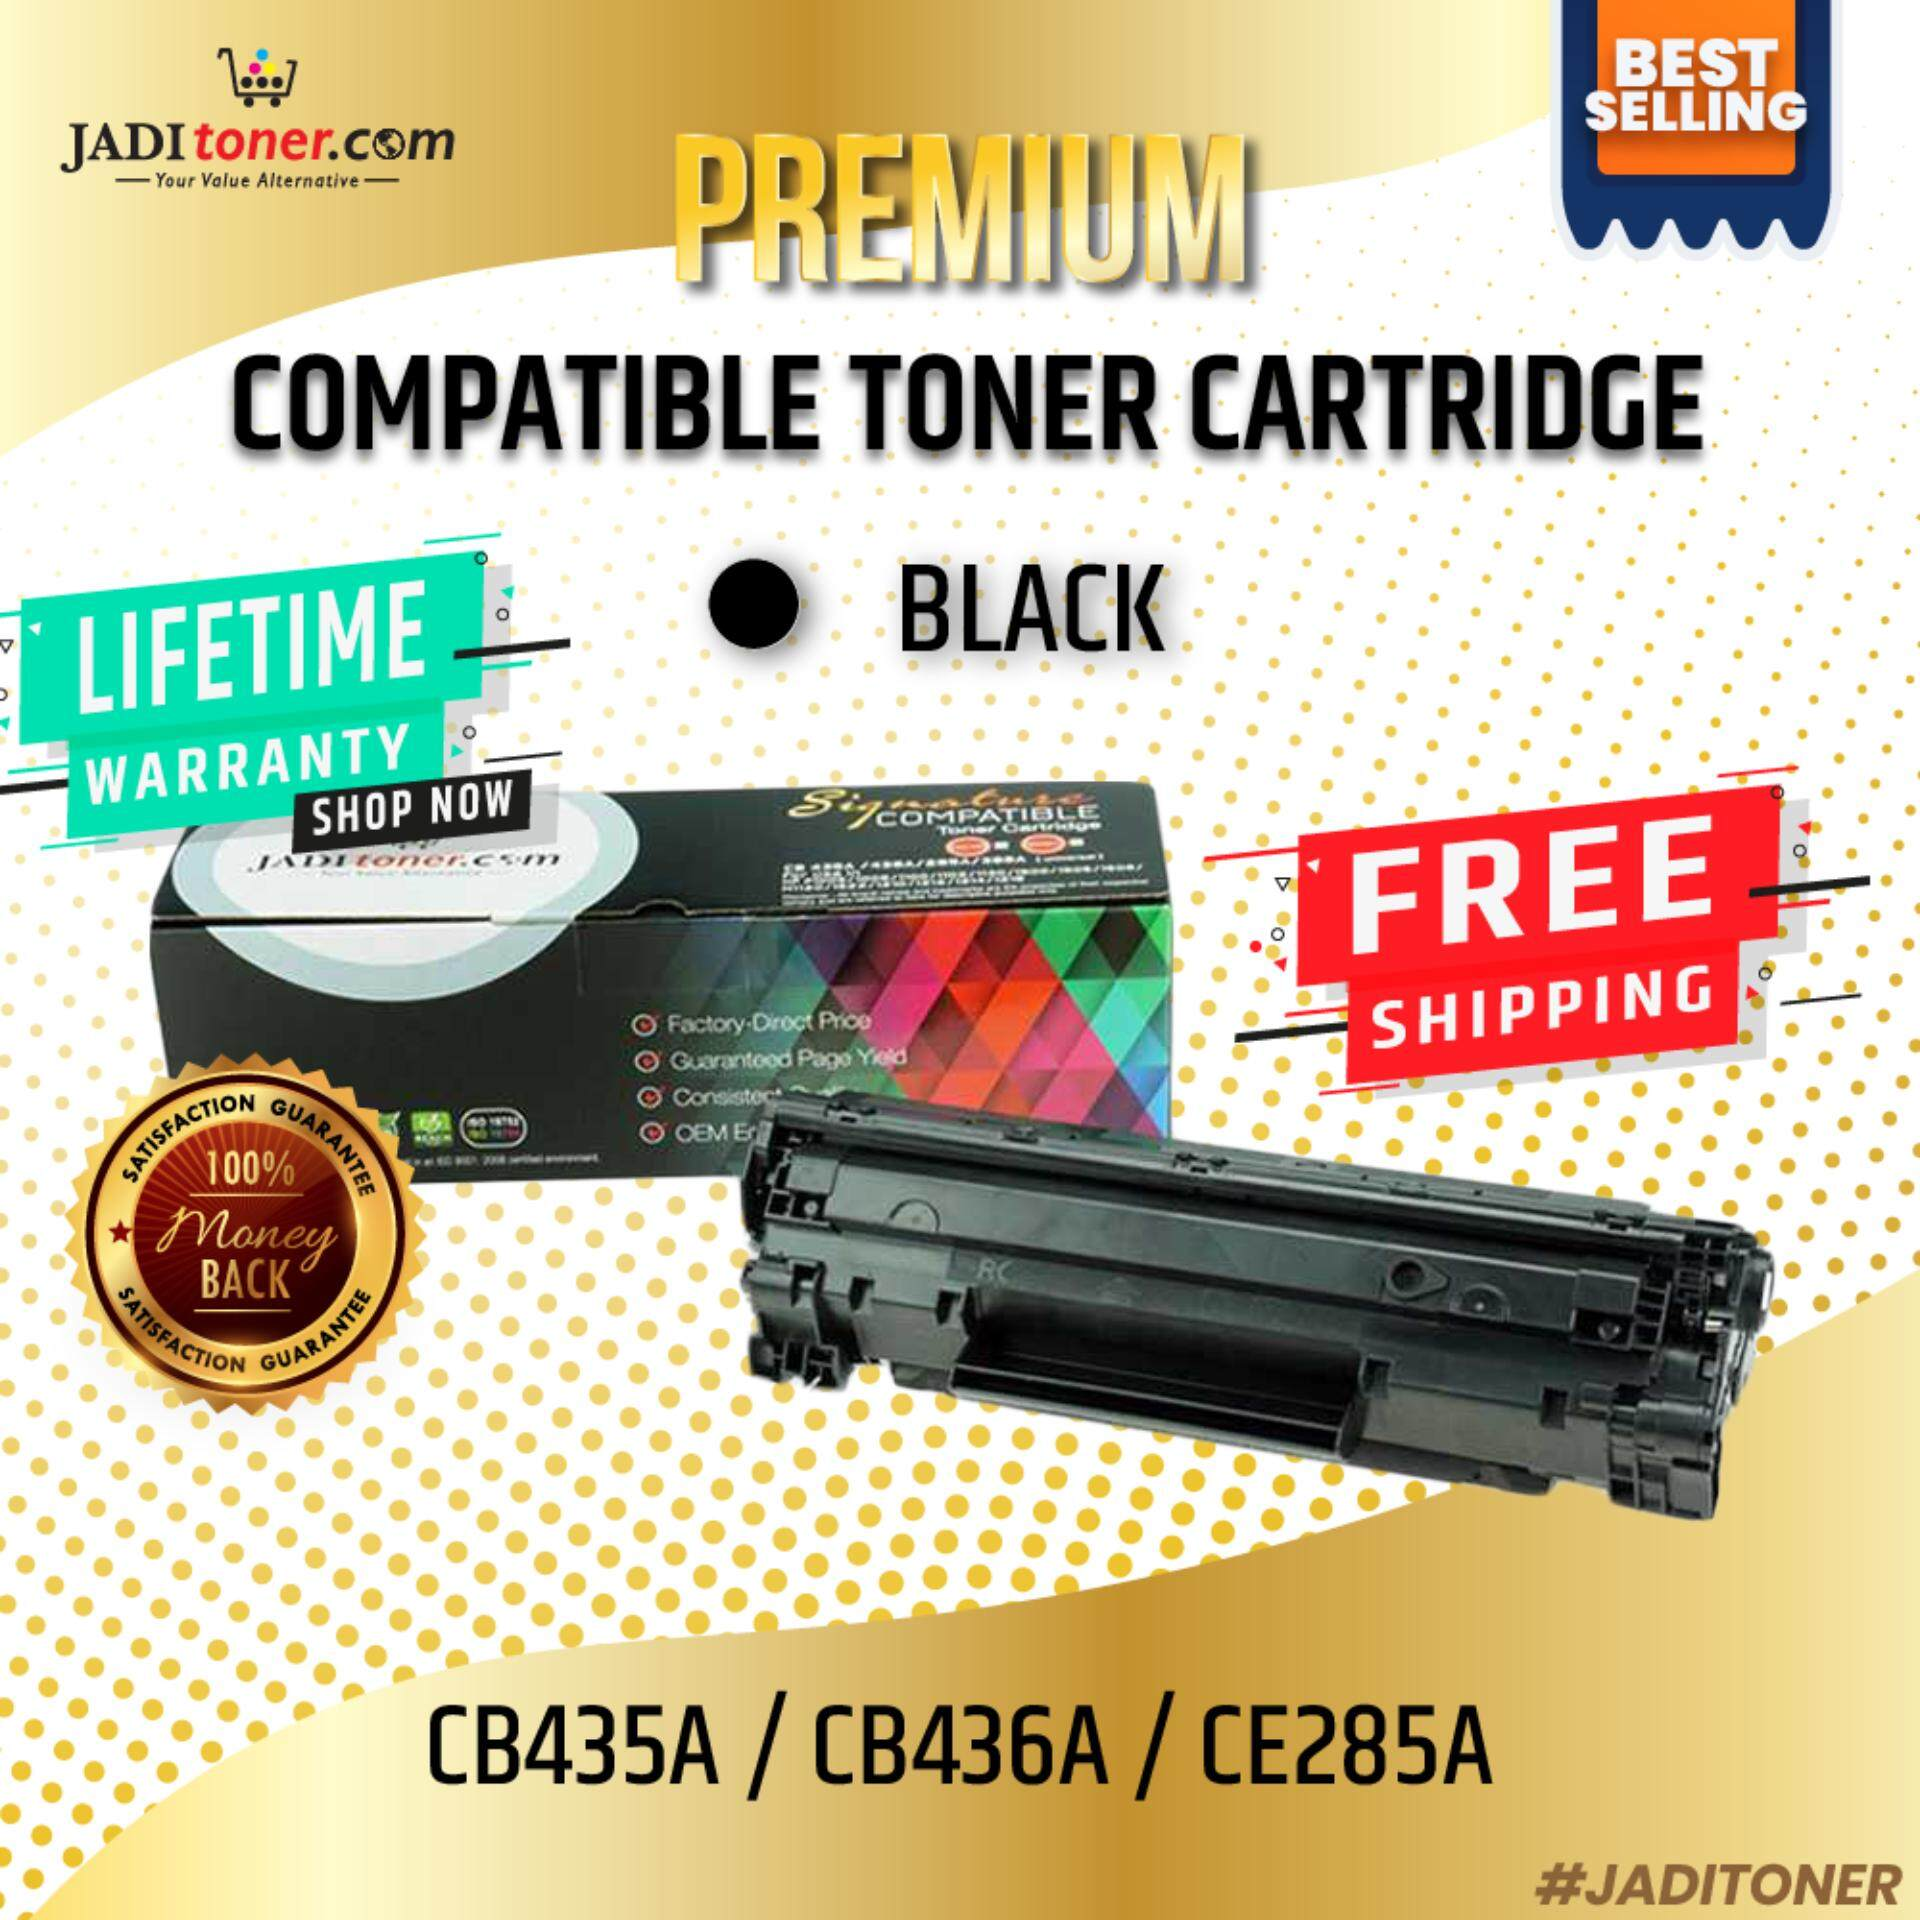 Compatible CB436A Laser Toner Cartridge For Use In HP CB436 436A 36A LaserJet P1005 / P1006 /  P1505 / M1120 / M1522 /  P1100 / P1102 / M1130 / 1210MFP